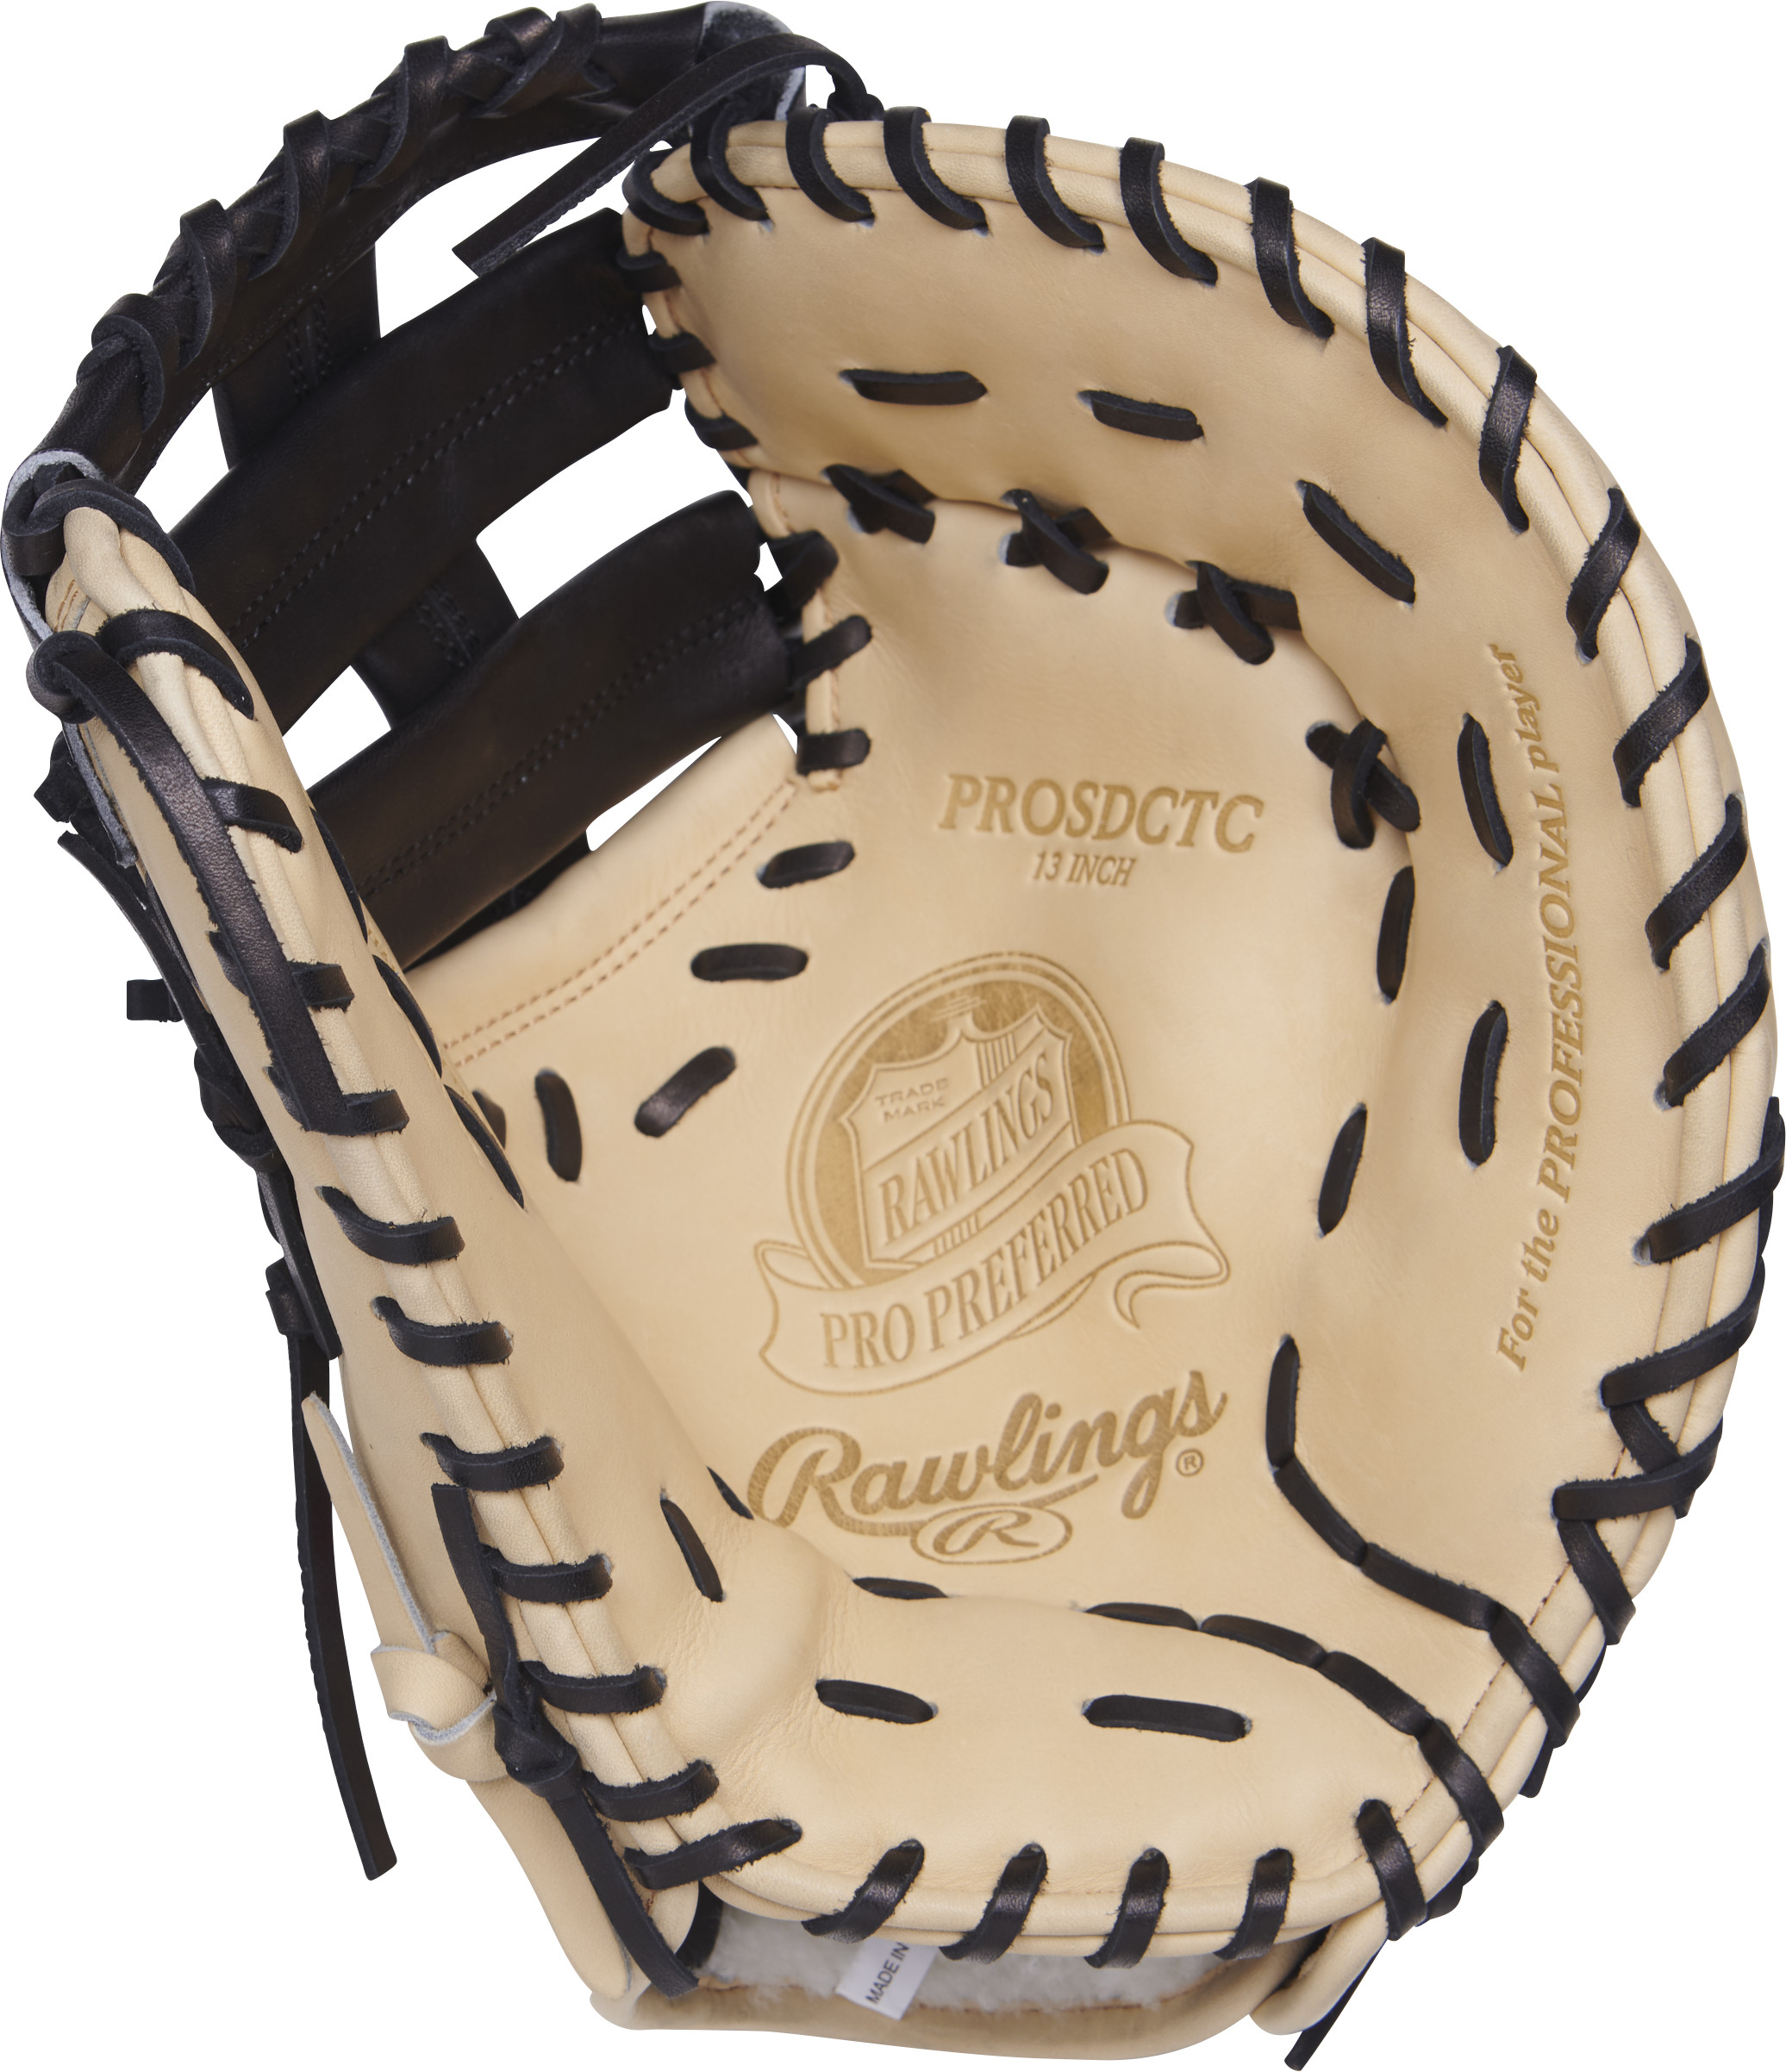 http://www.bestbatdeals.com/images/gloves/rawlings/PROSDCTC-1.jpg